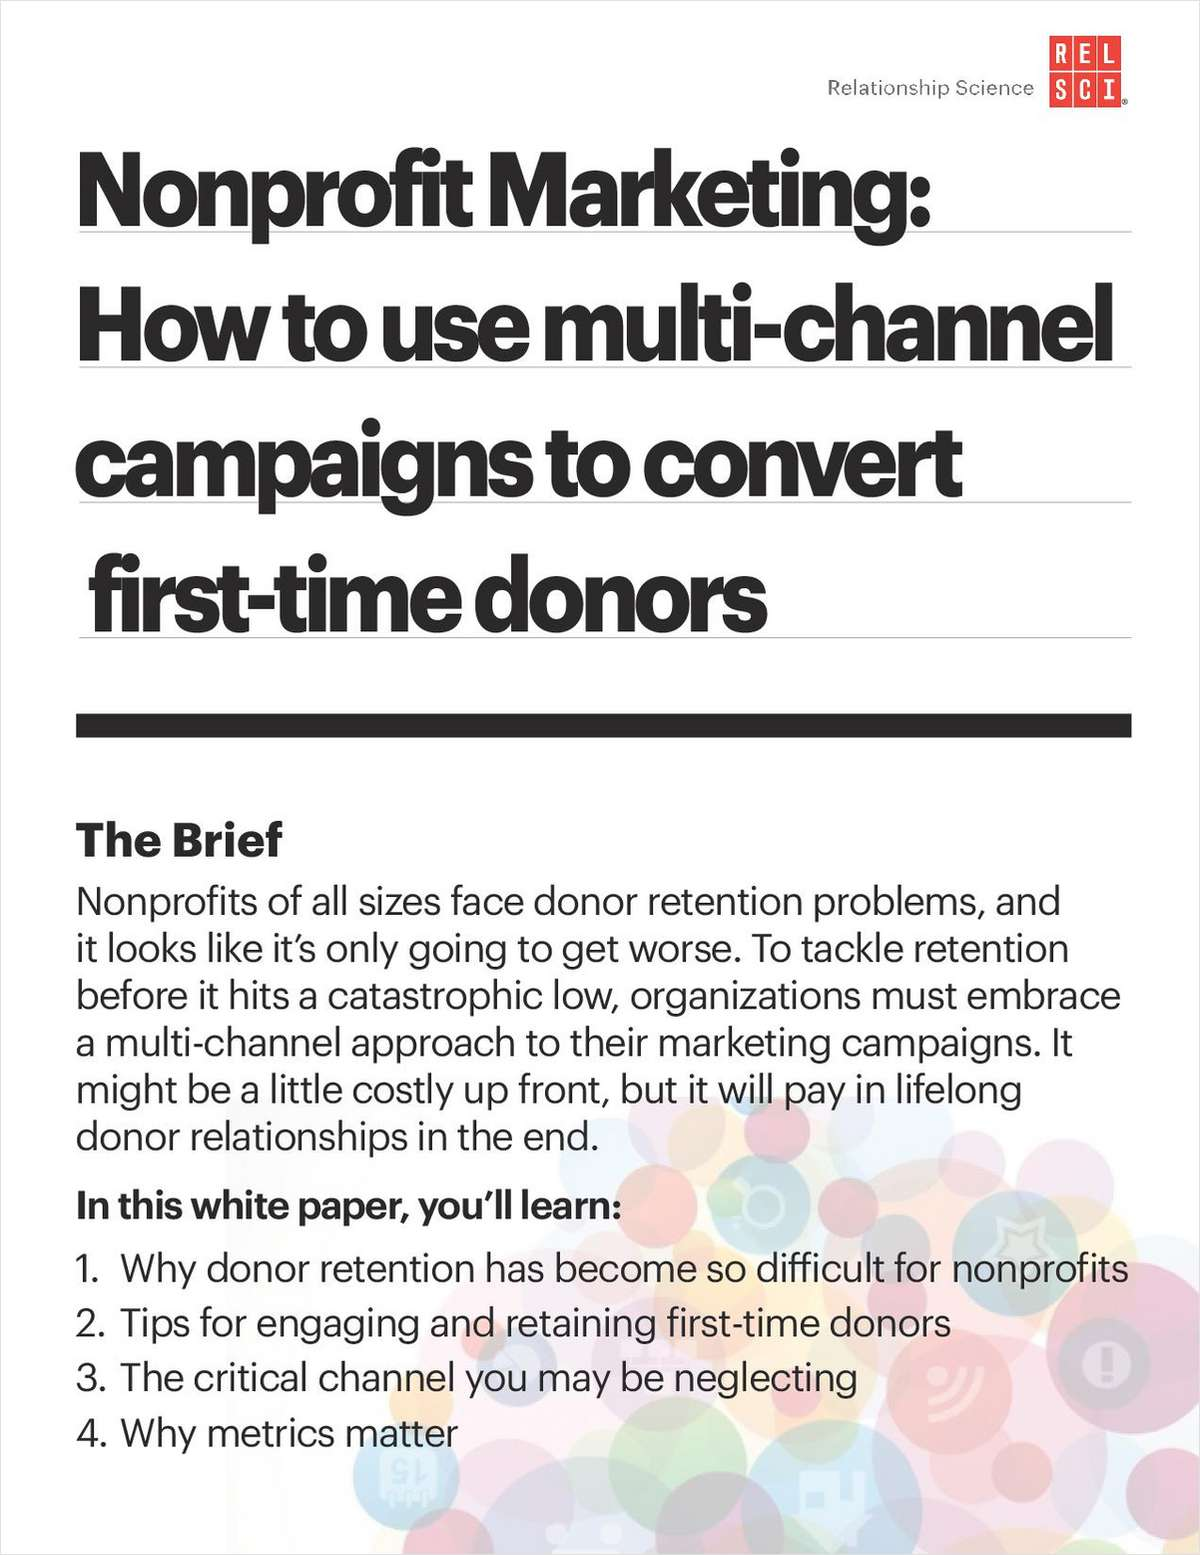 Nonprofit Marketing: How Fundraisers Can Use Multi-Channel Campaigns to Convert First-Time Donors